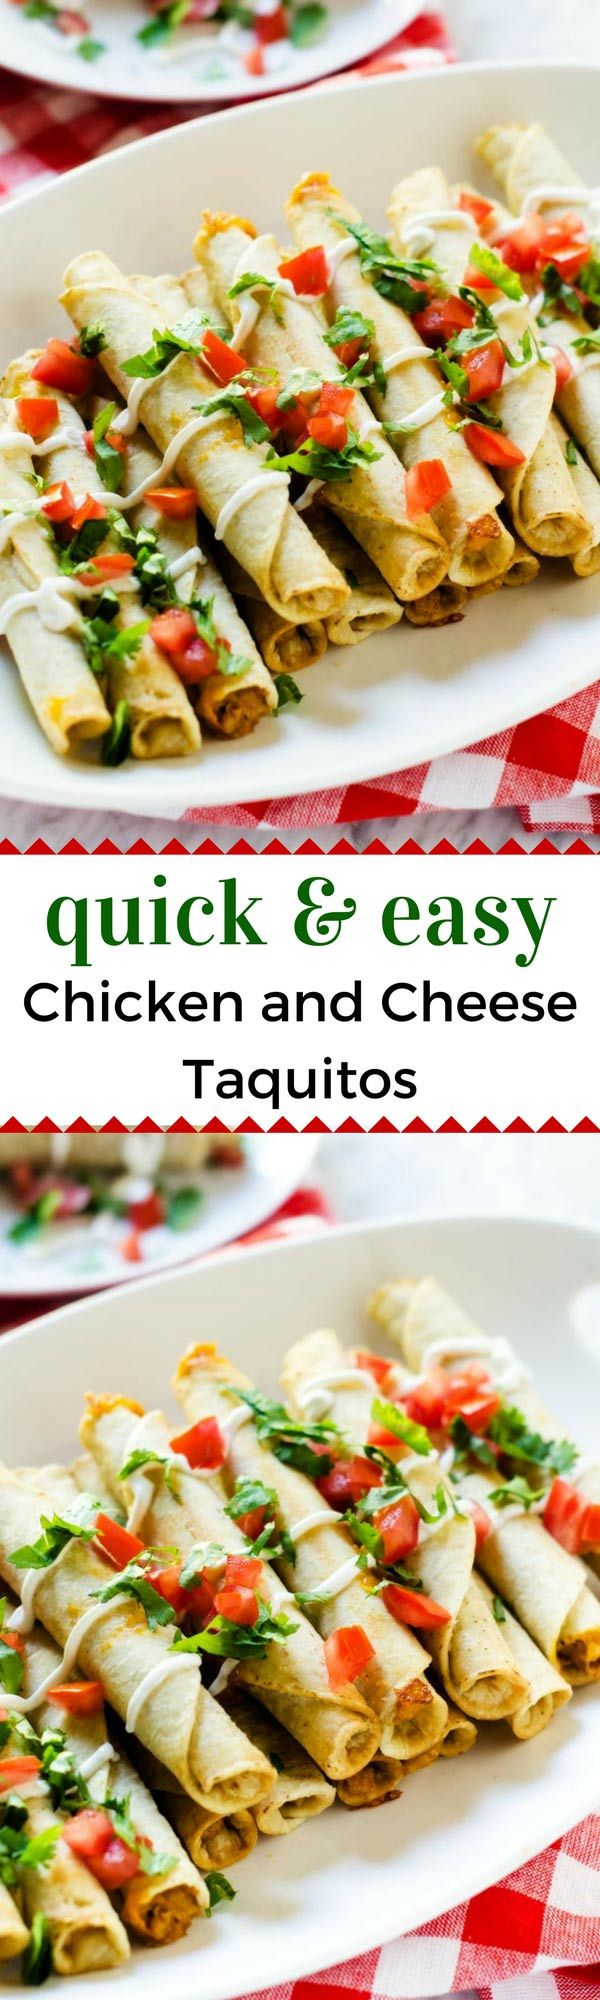 Quick & Easy Chicken and Cheese Taquitos -  Looking for an  easy after-school snacking solution?  Try these Quick & Easy Chicken and Cheese Taquitos and your kids will thank you for it. #JustSayOle #ad  @joseolecentral (Mexican Recipes For Kids)